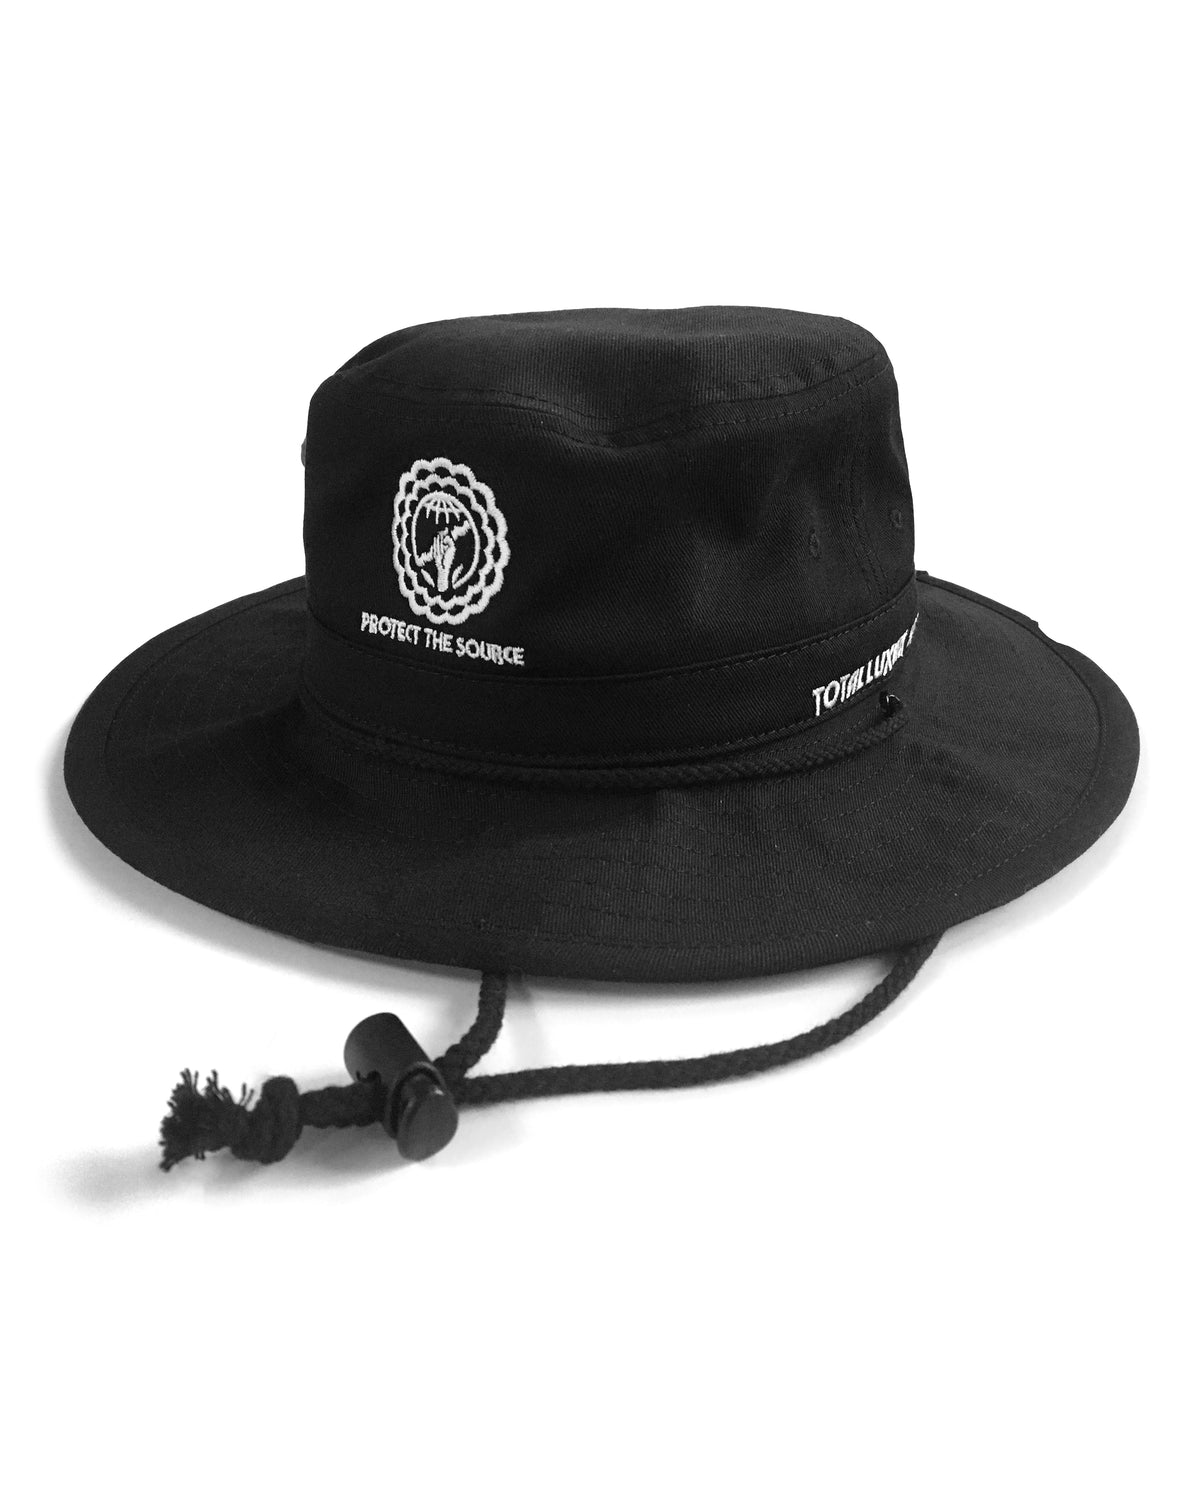 PROTECT THE SOURCE - RIVER HAT - BLACK